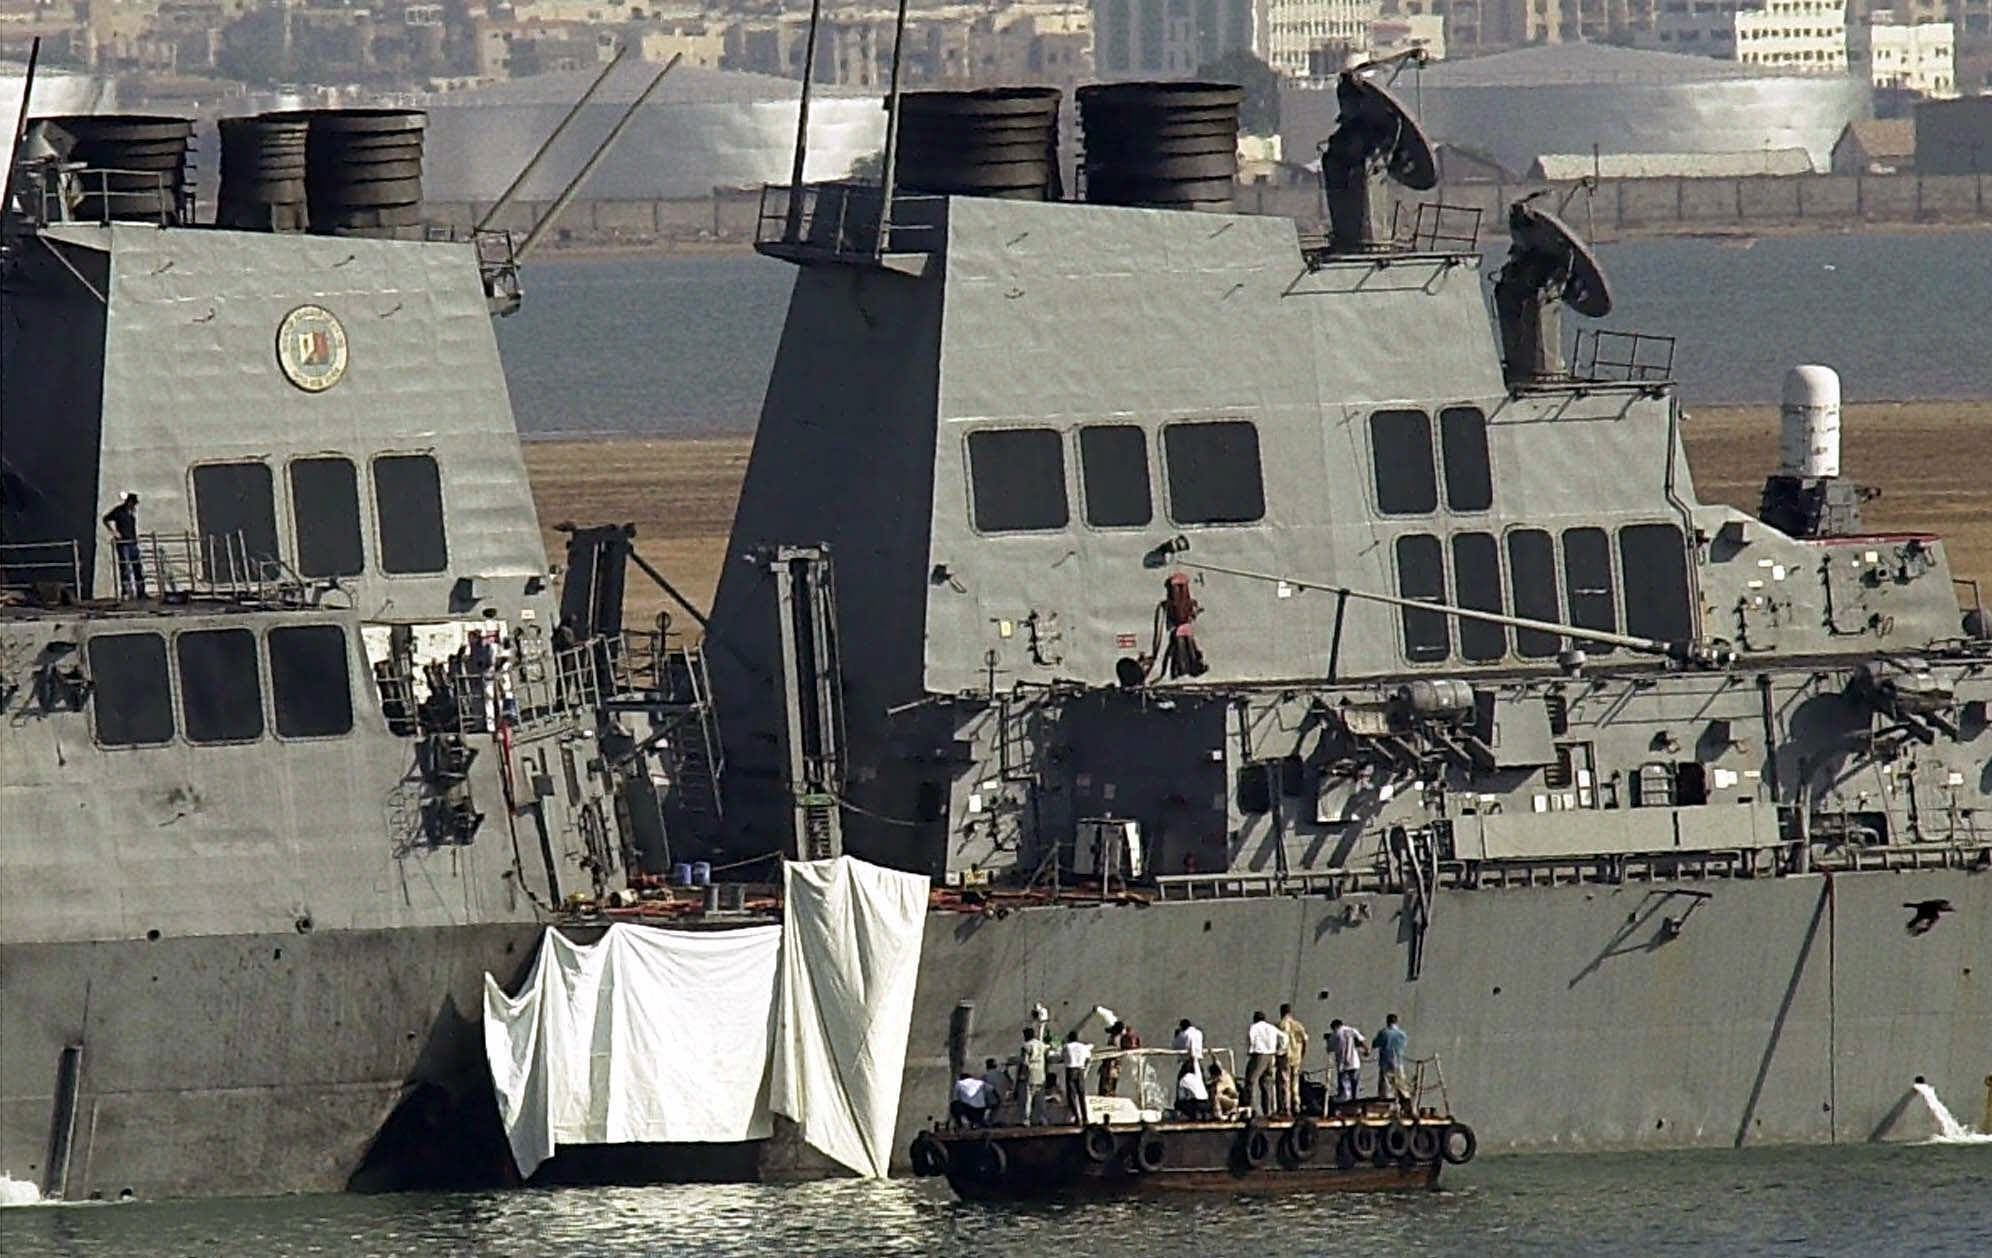 Experts examine the hole on the side of the USS Cole in Aden on October 13, 2000. (AP)